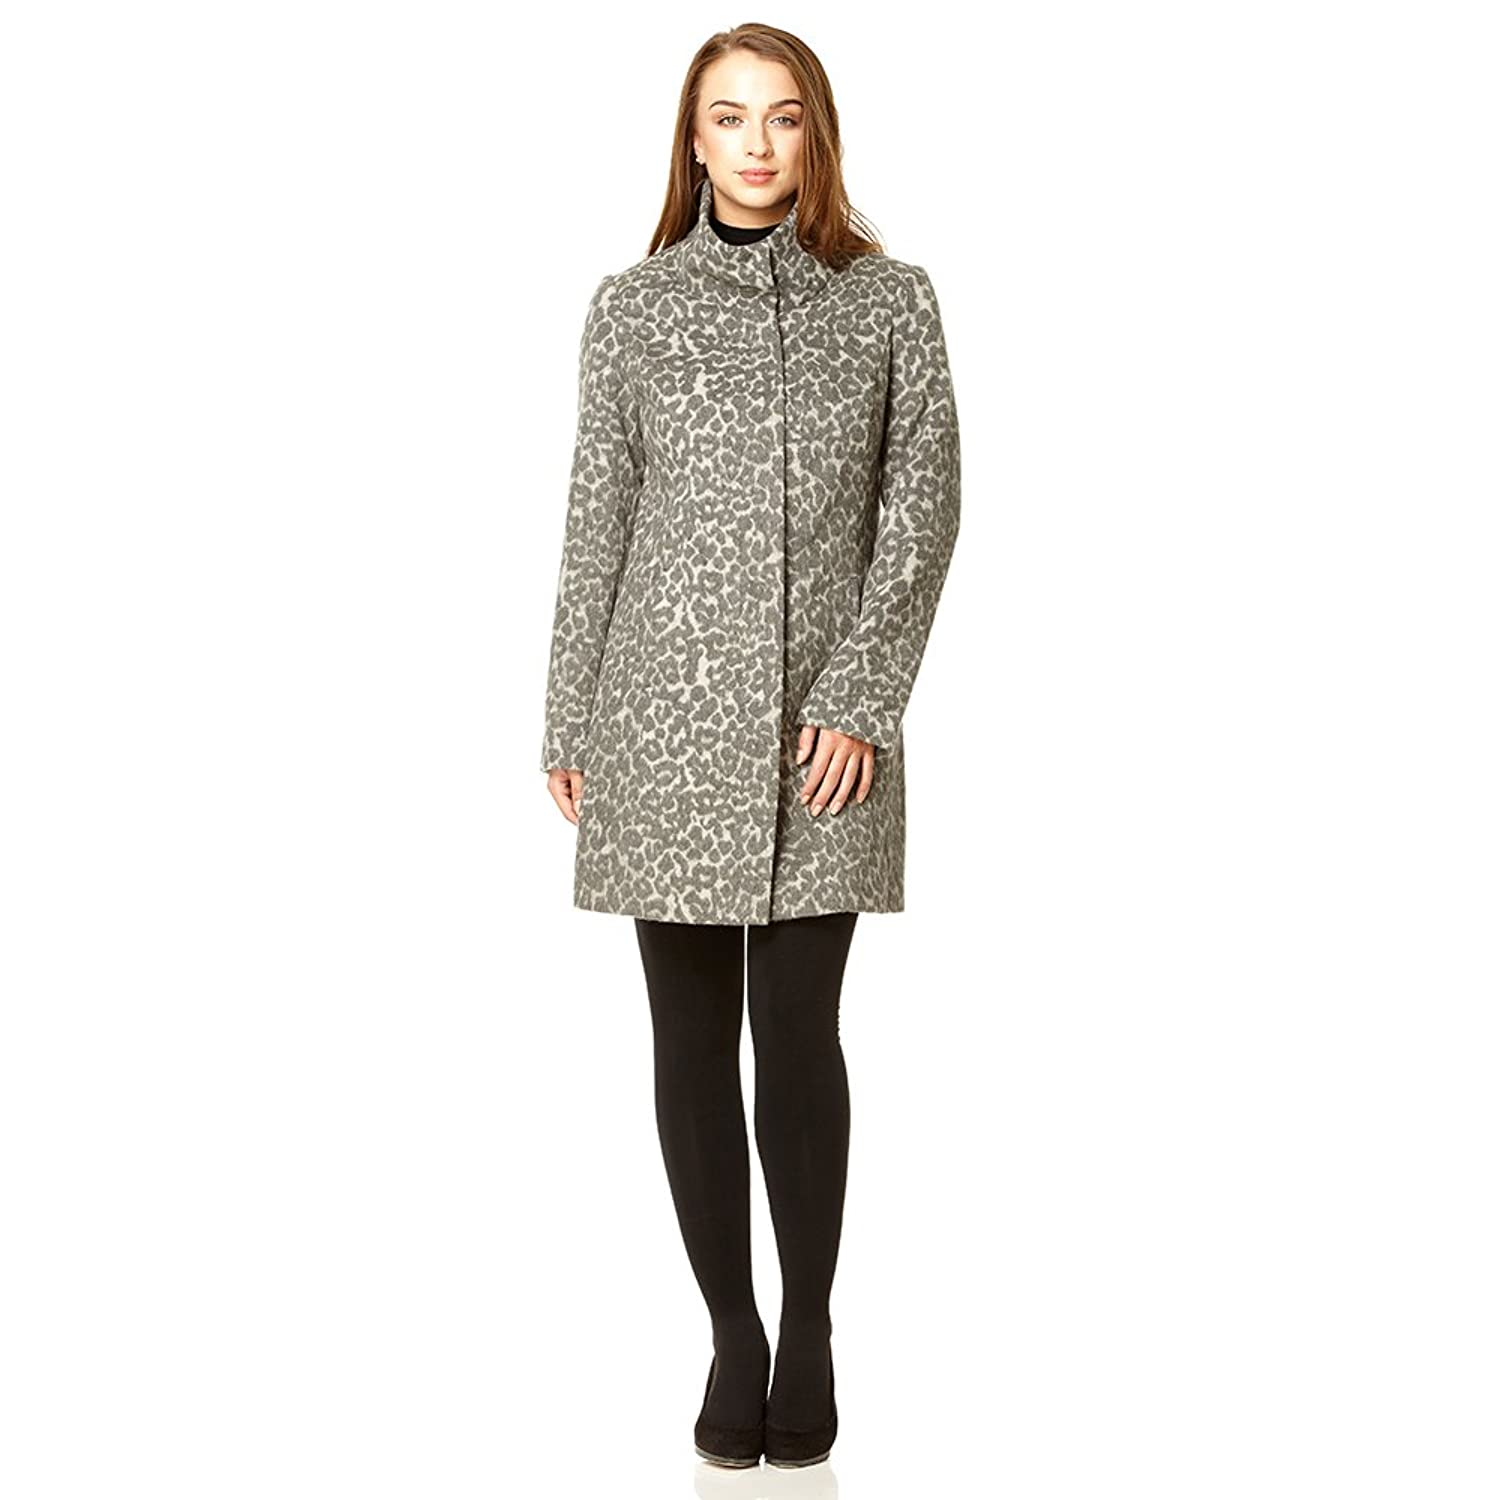 Anastasia High Neck Leopard Print Wolle Wintermantel,grau